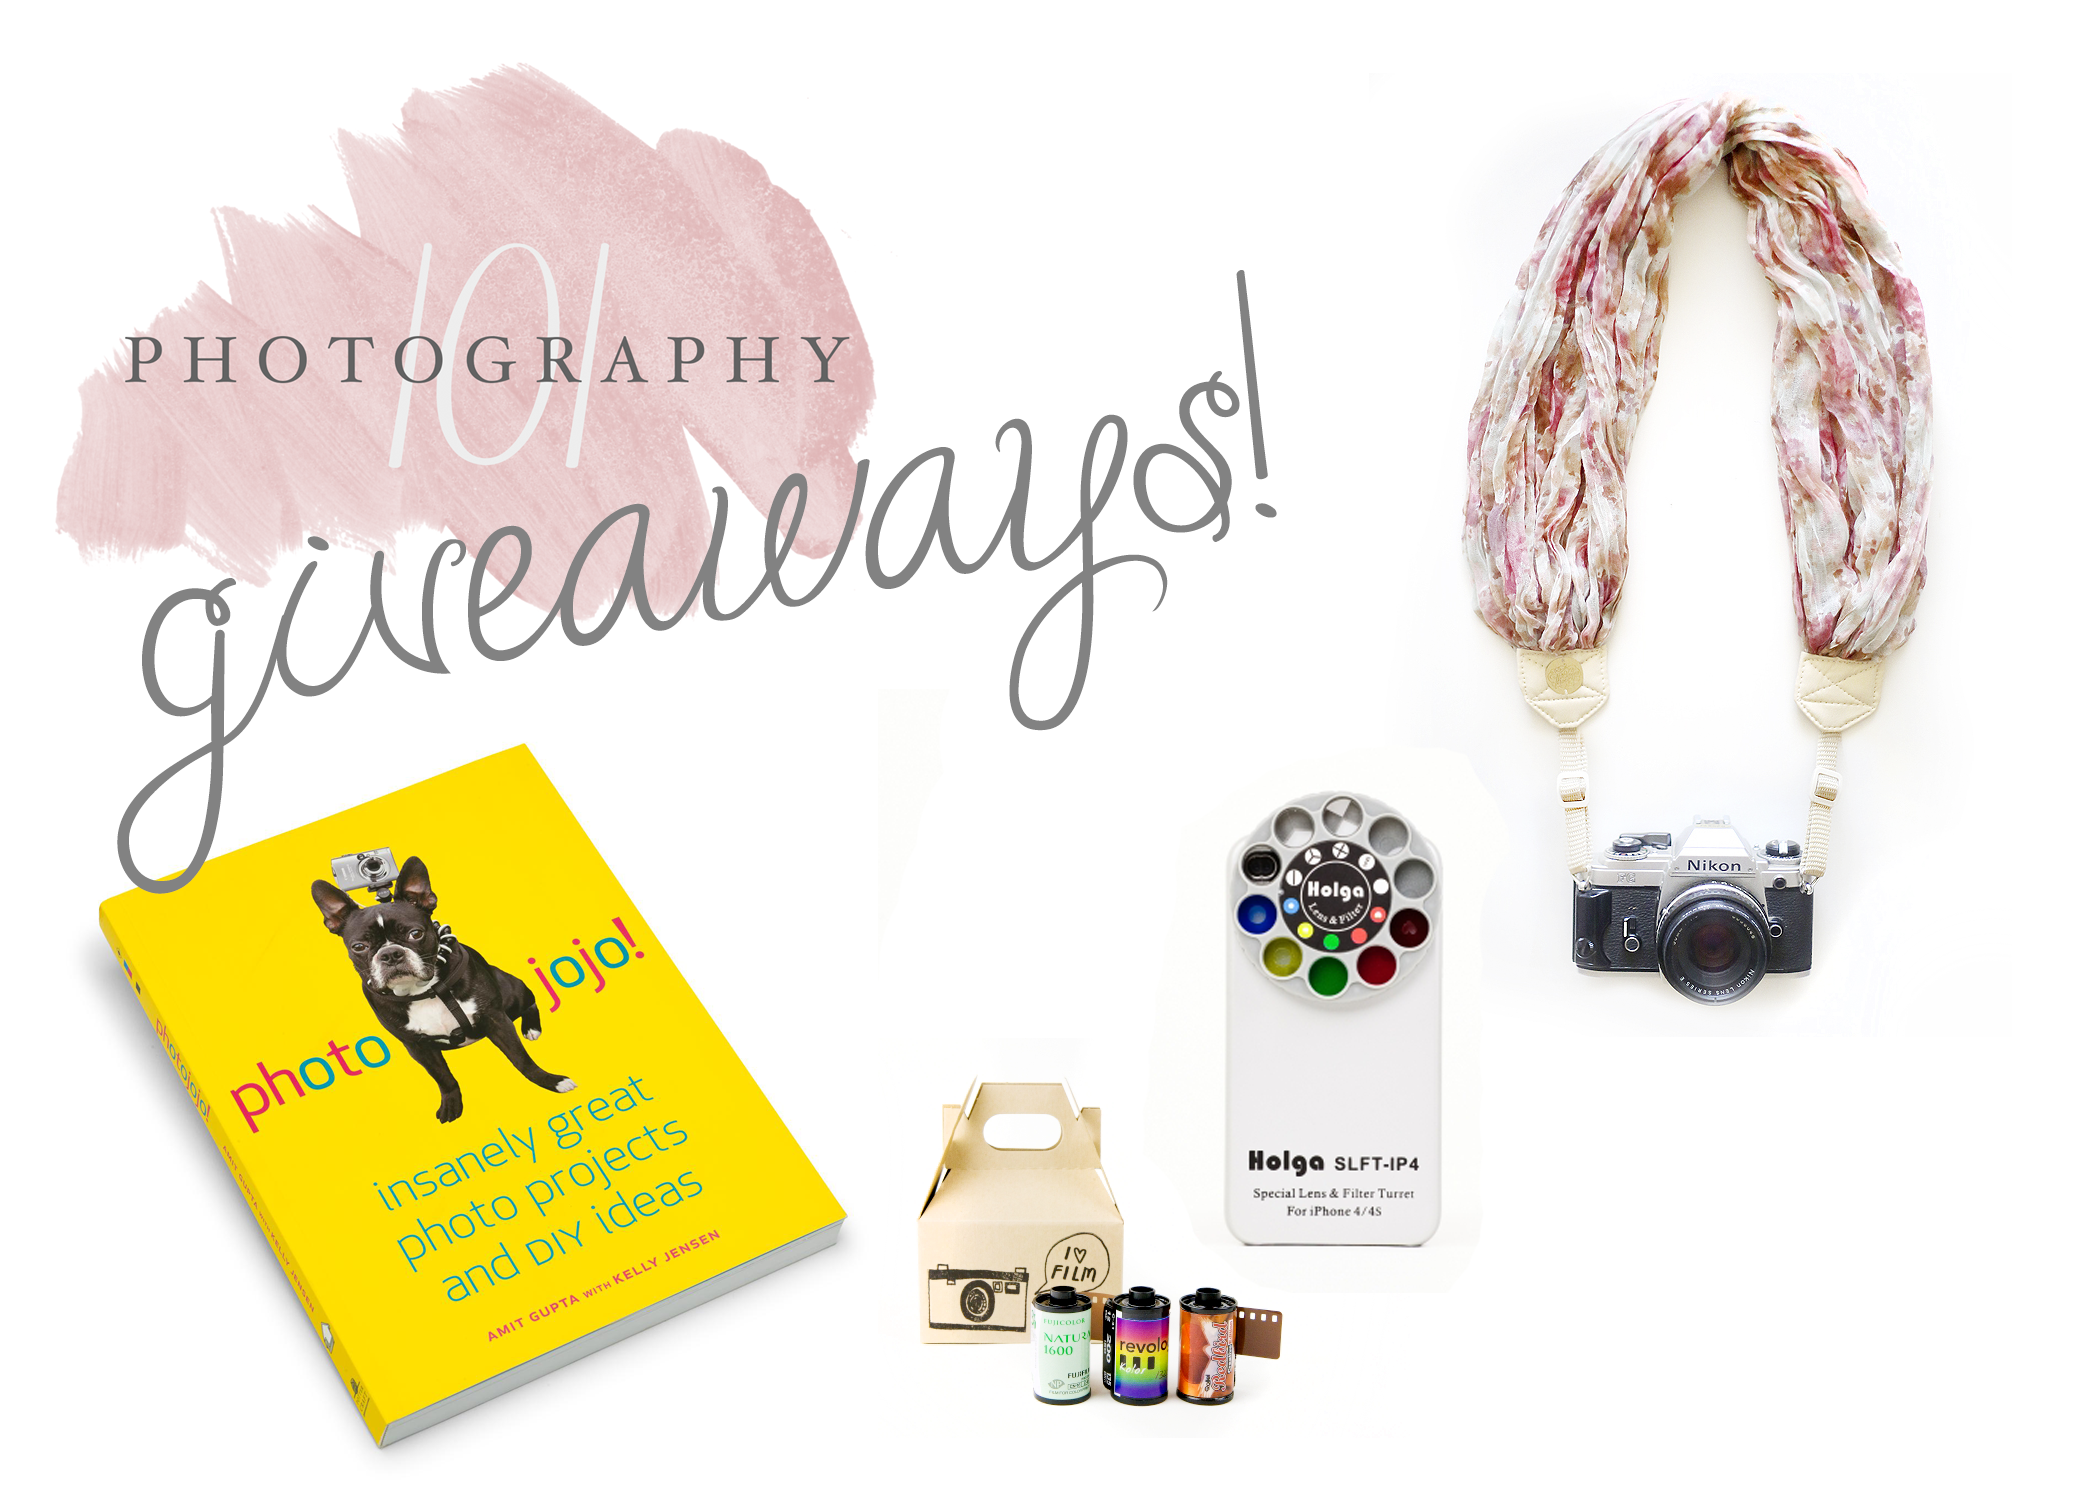 photography101 giveaway